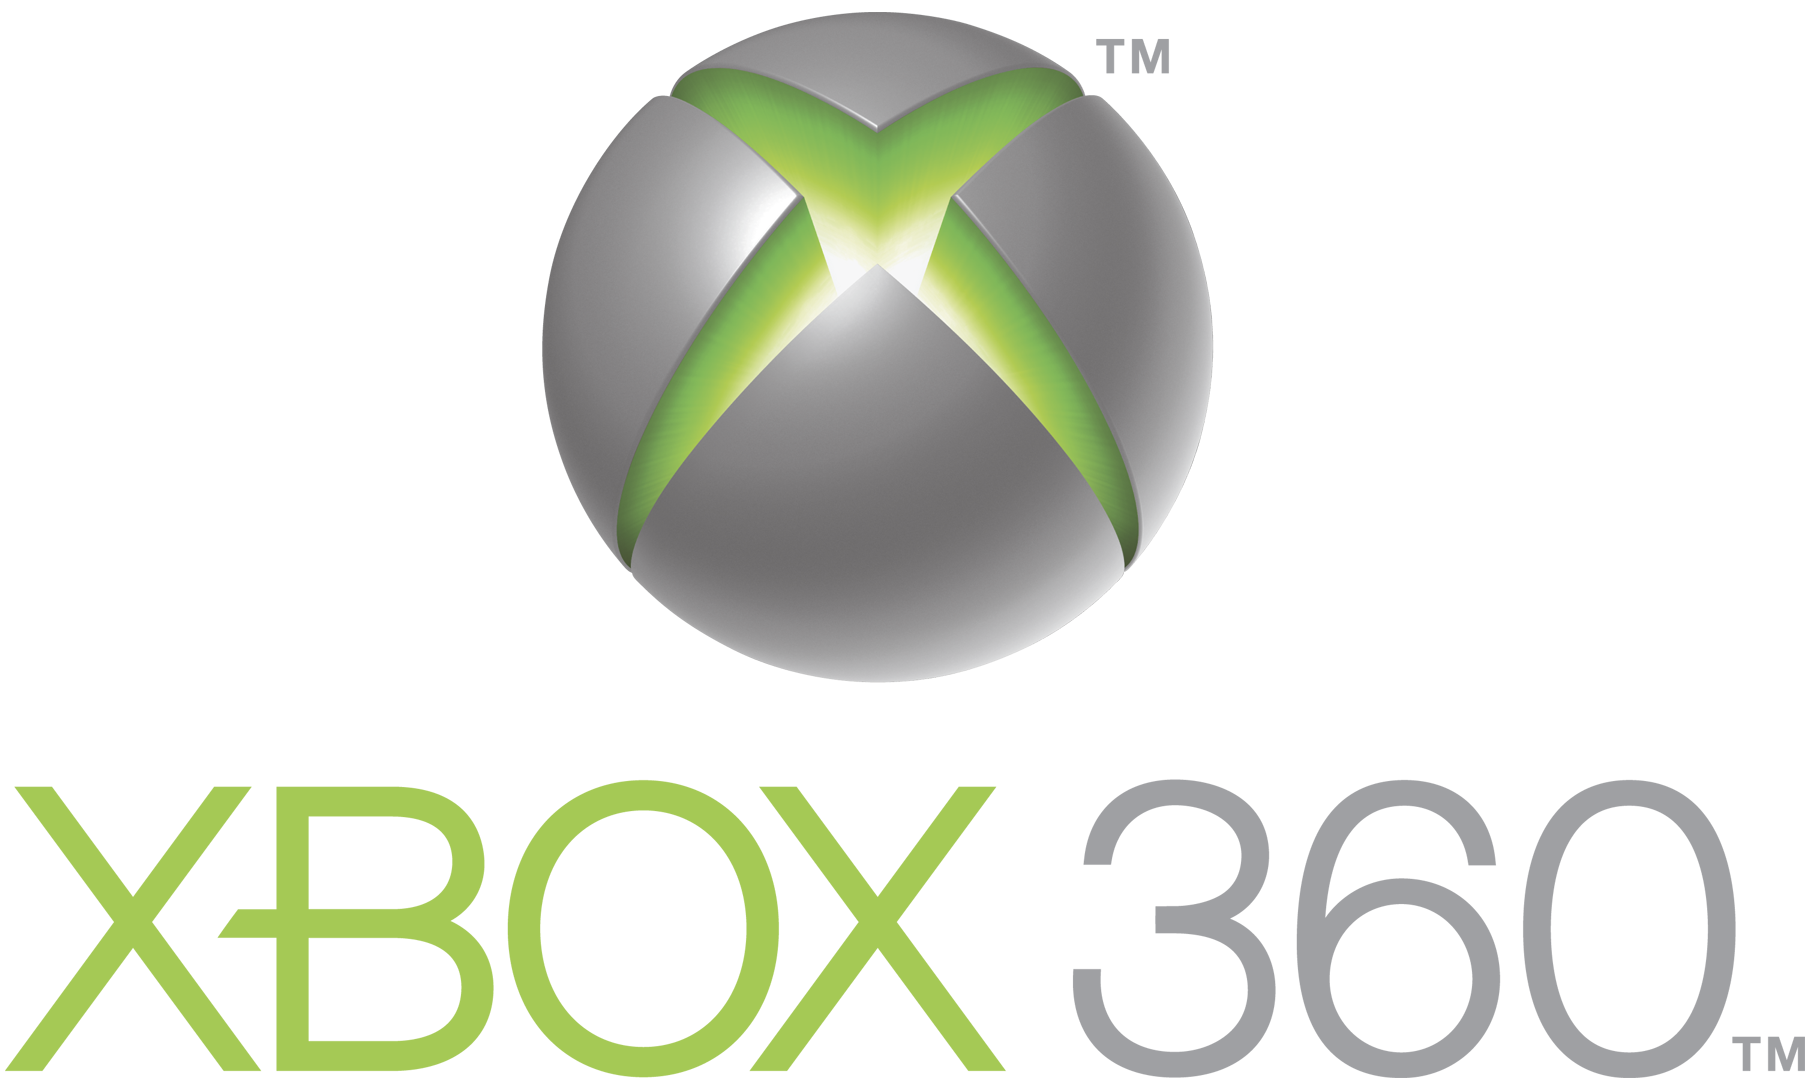 xbox 360 logo png transparent #2488